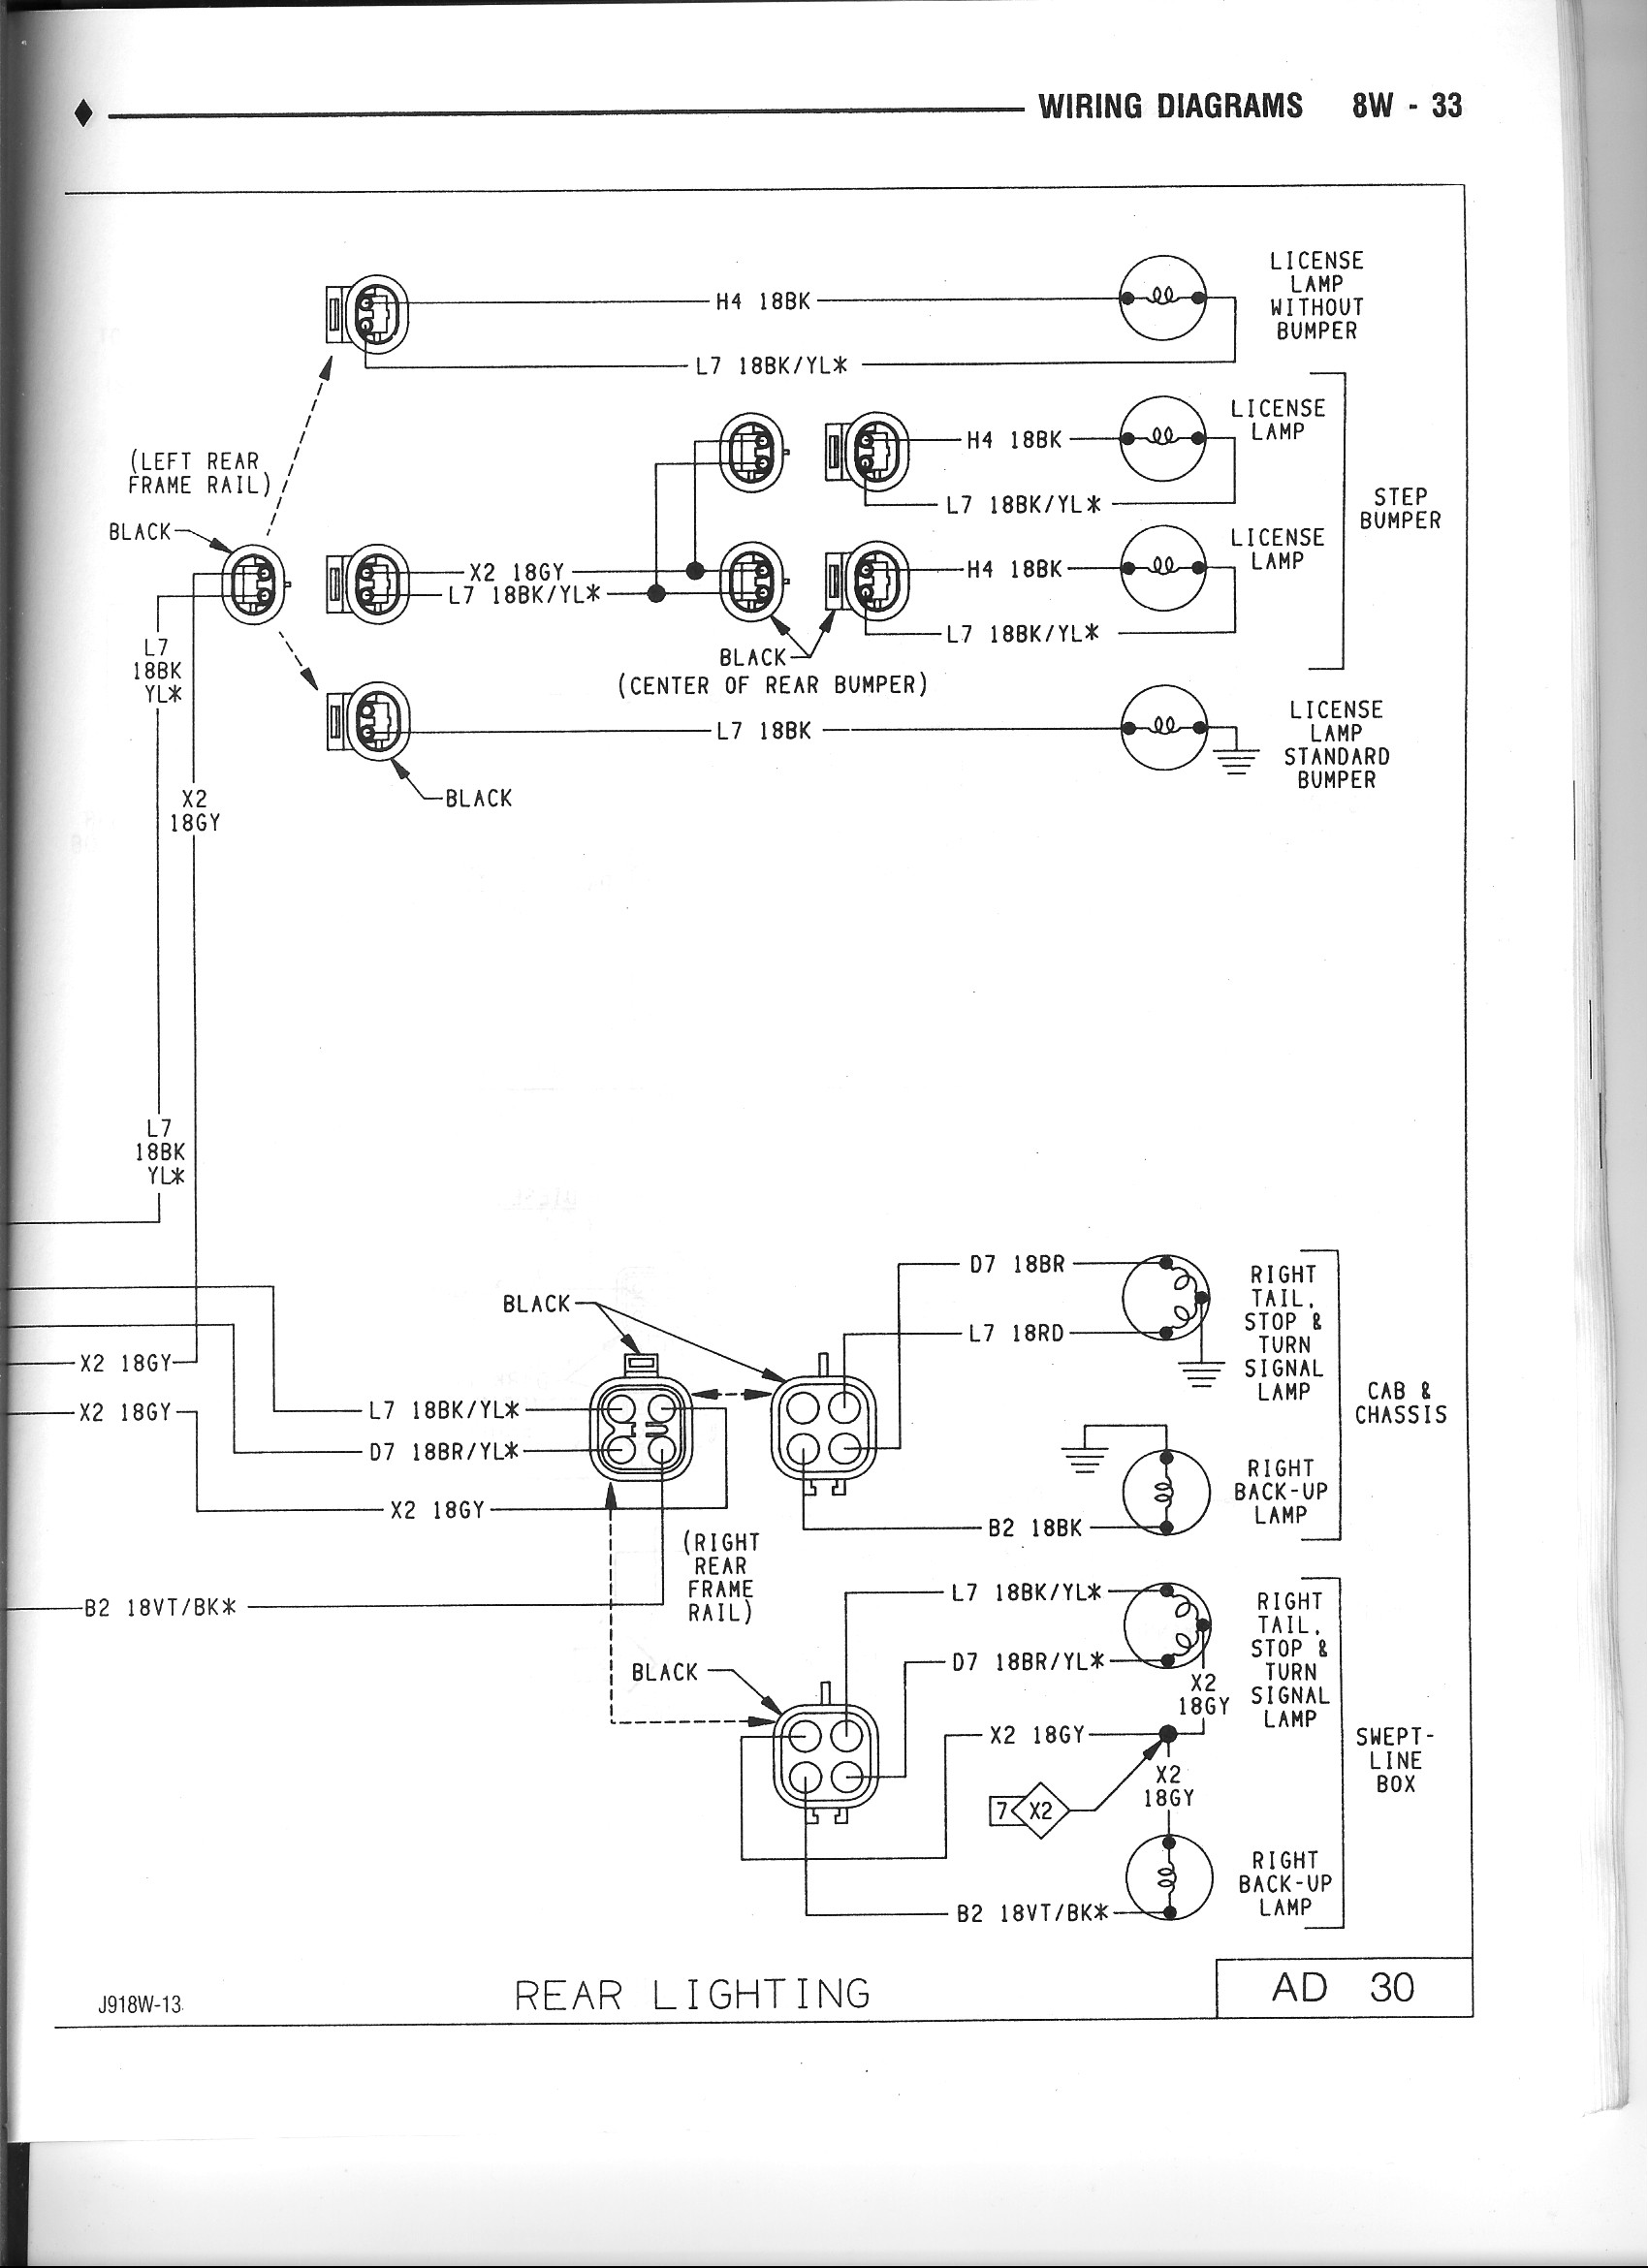 1996 Dodge Cummins Fuse Diagram 3500 Rear Light Wiring List Of Schematic Circuit Harness Diesel Truck Resource Forums Rh Dieseltruckresource Com Ram Tail